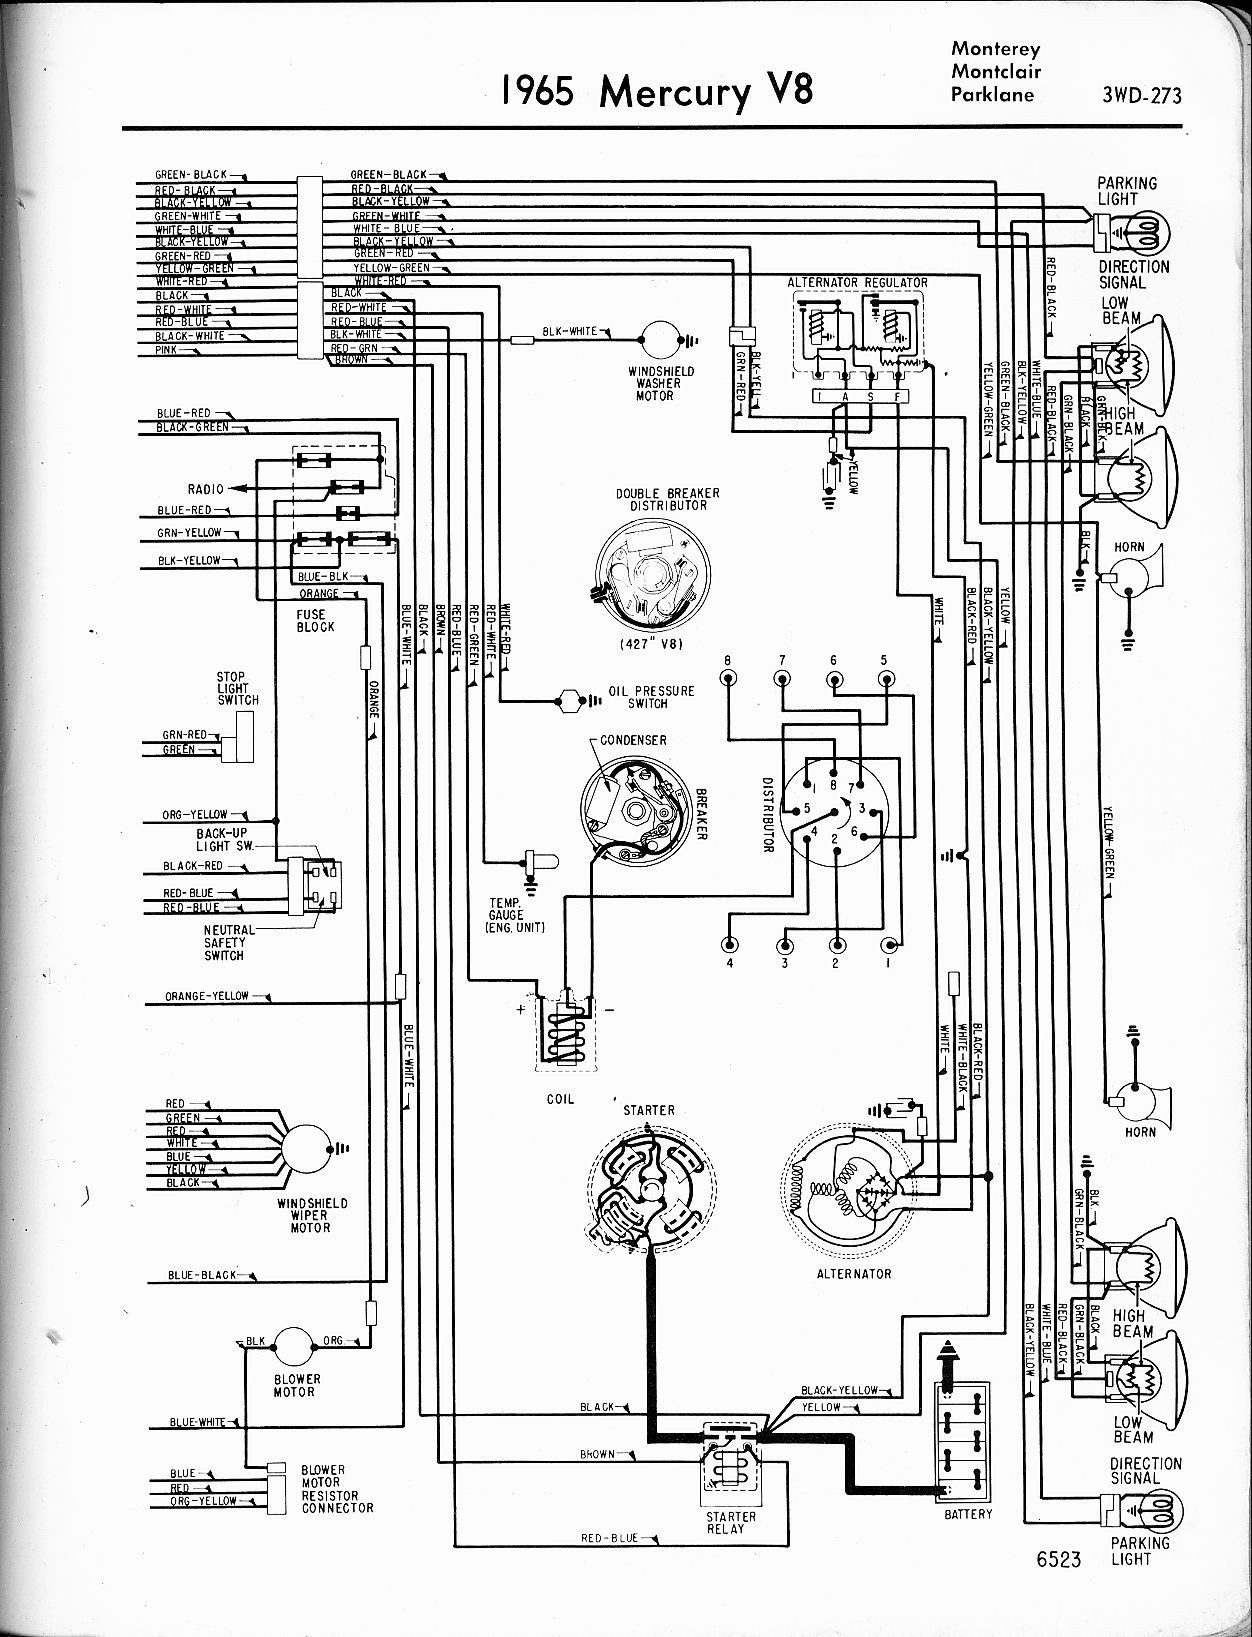 2000 mercury cougar wiring diagram free download learn wiring rh thegadgetgurus co